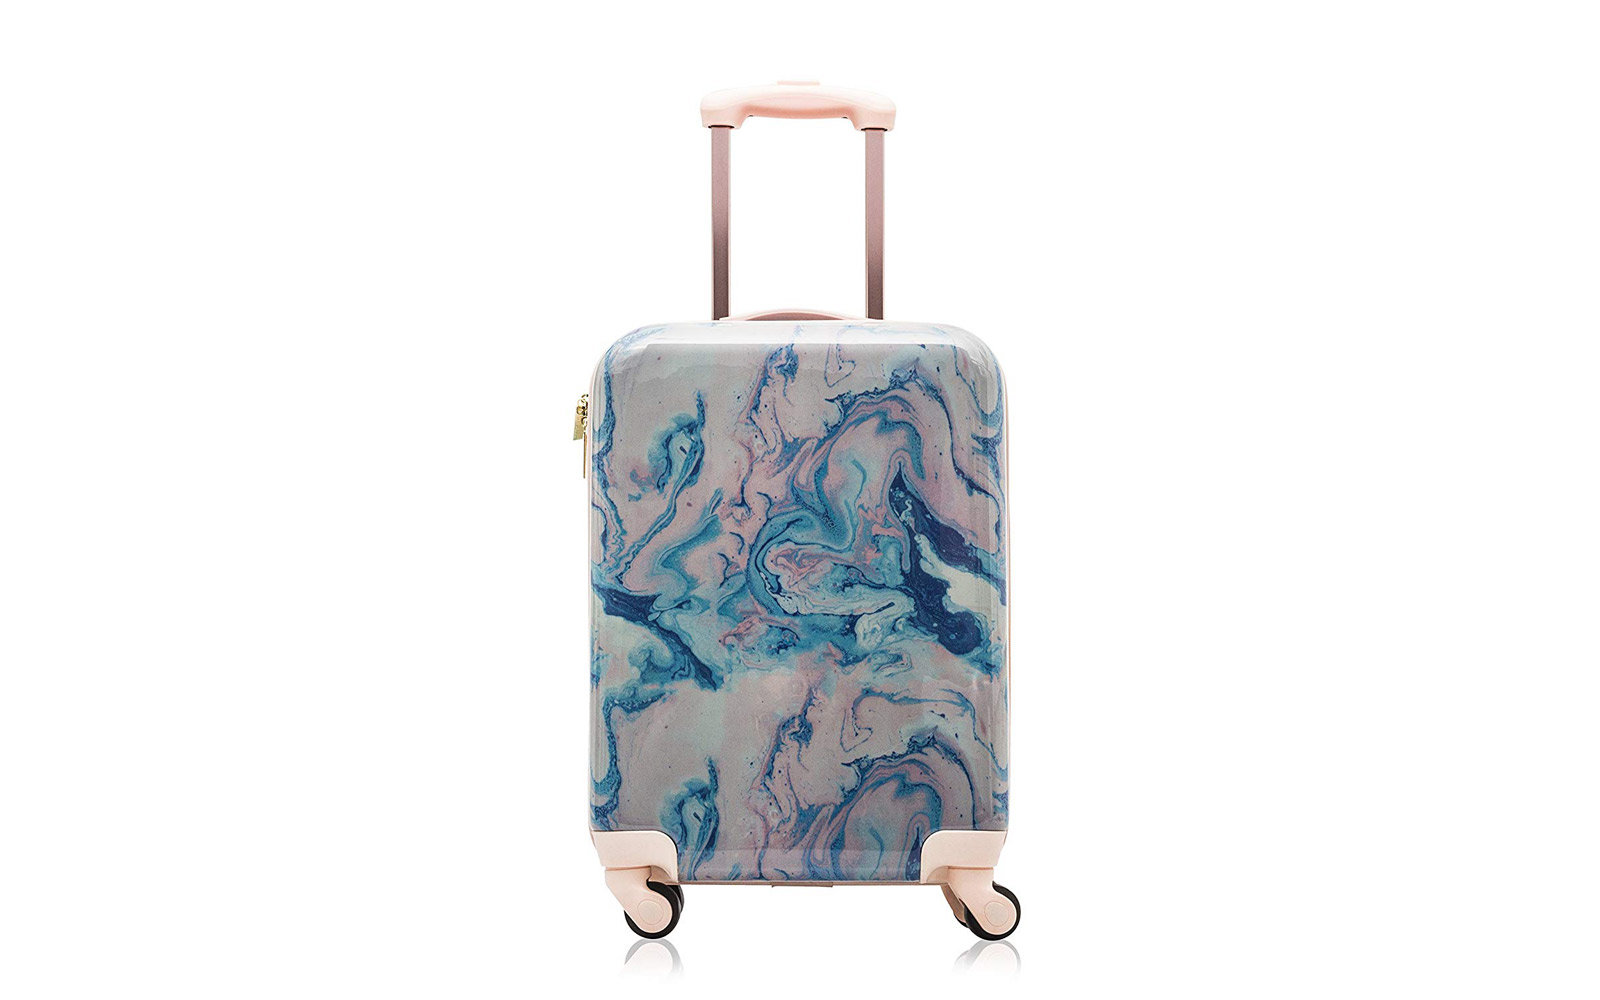 Cosmopolitan 21-inch Hardcase Carry-on Suitcase